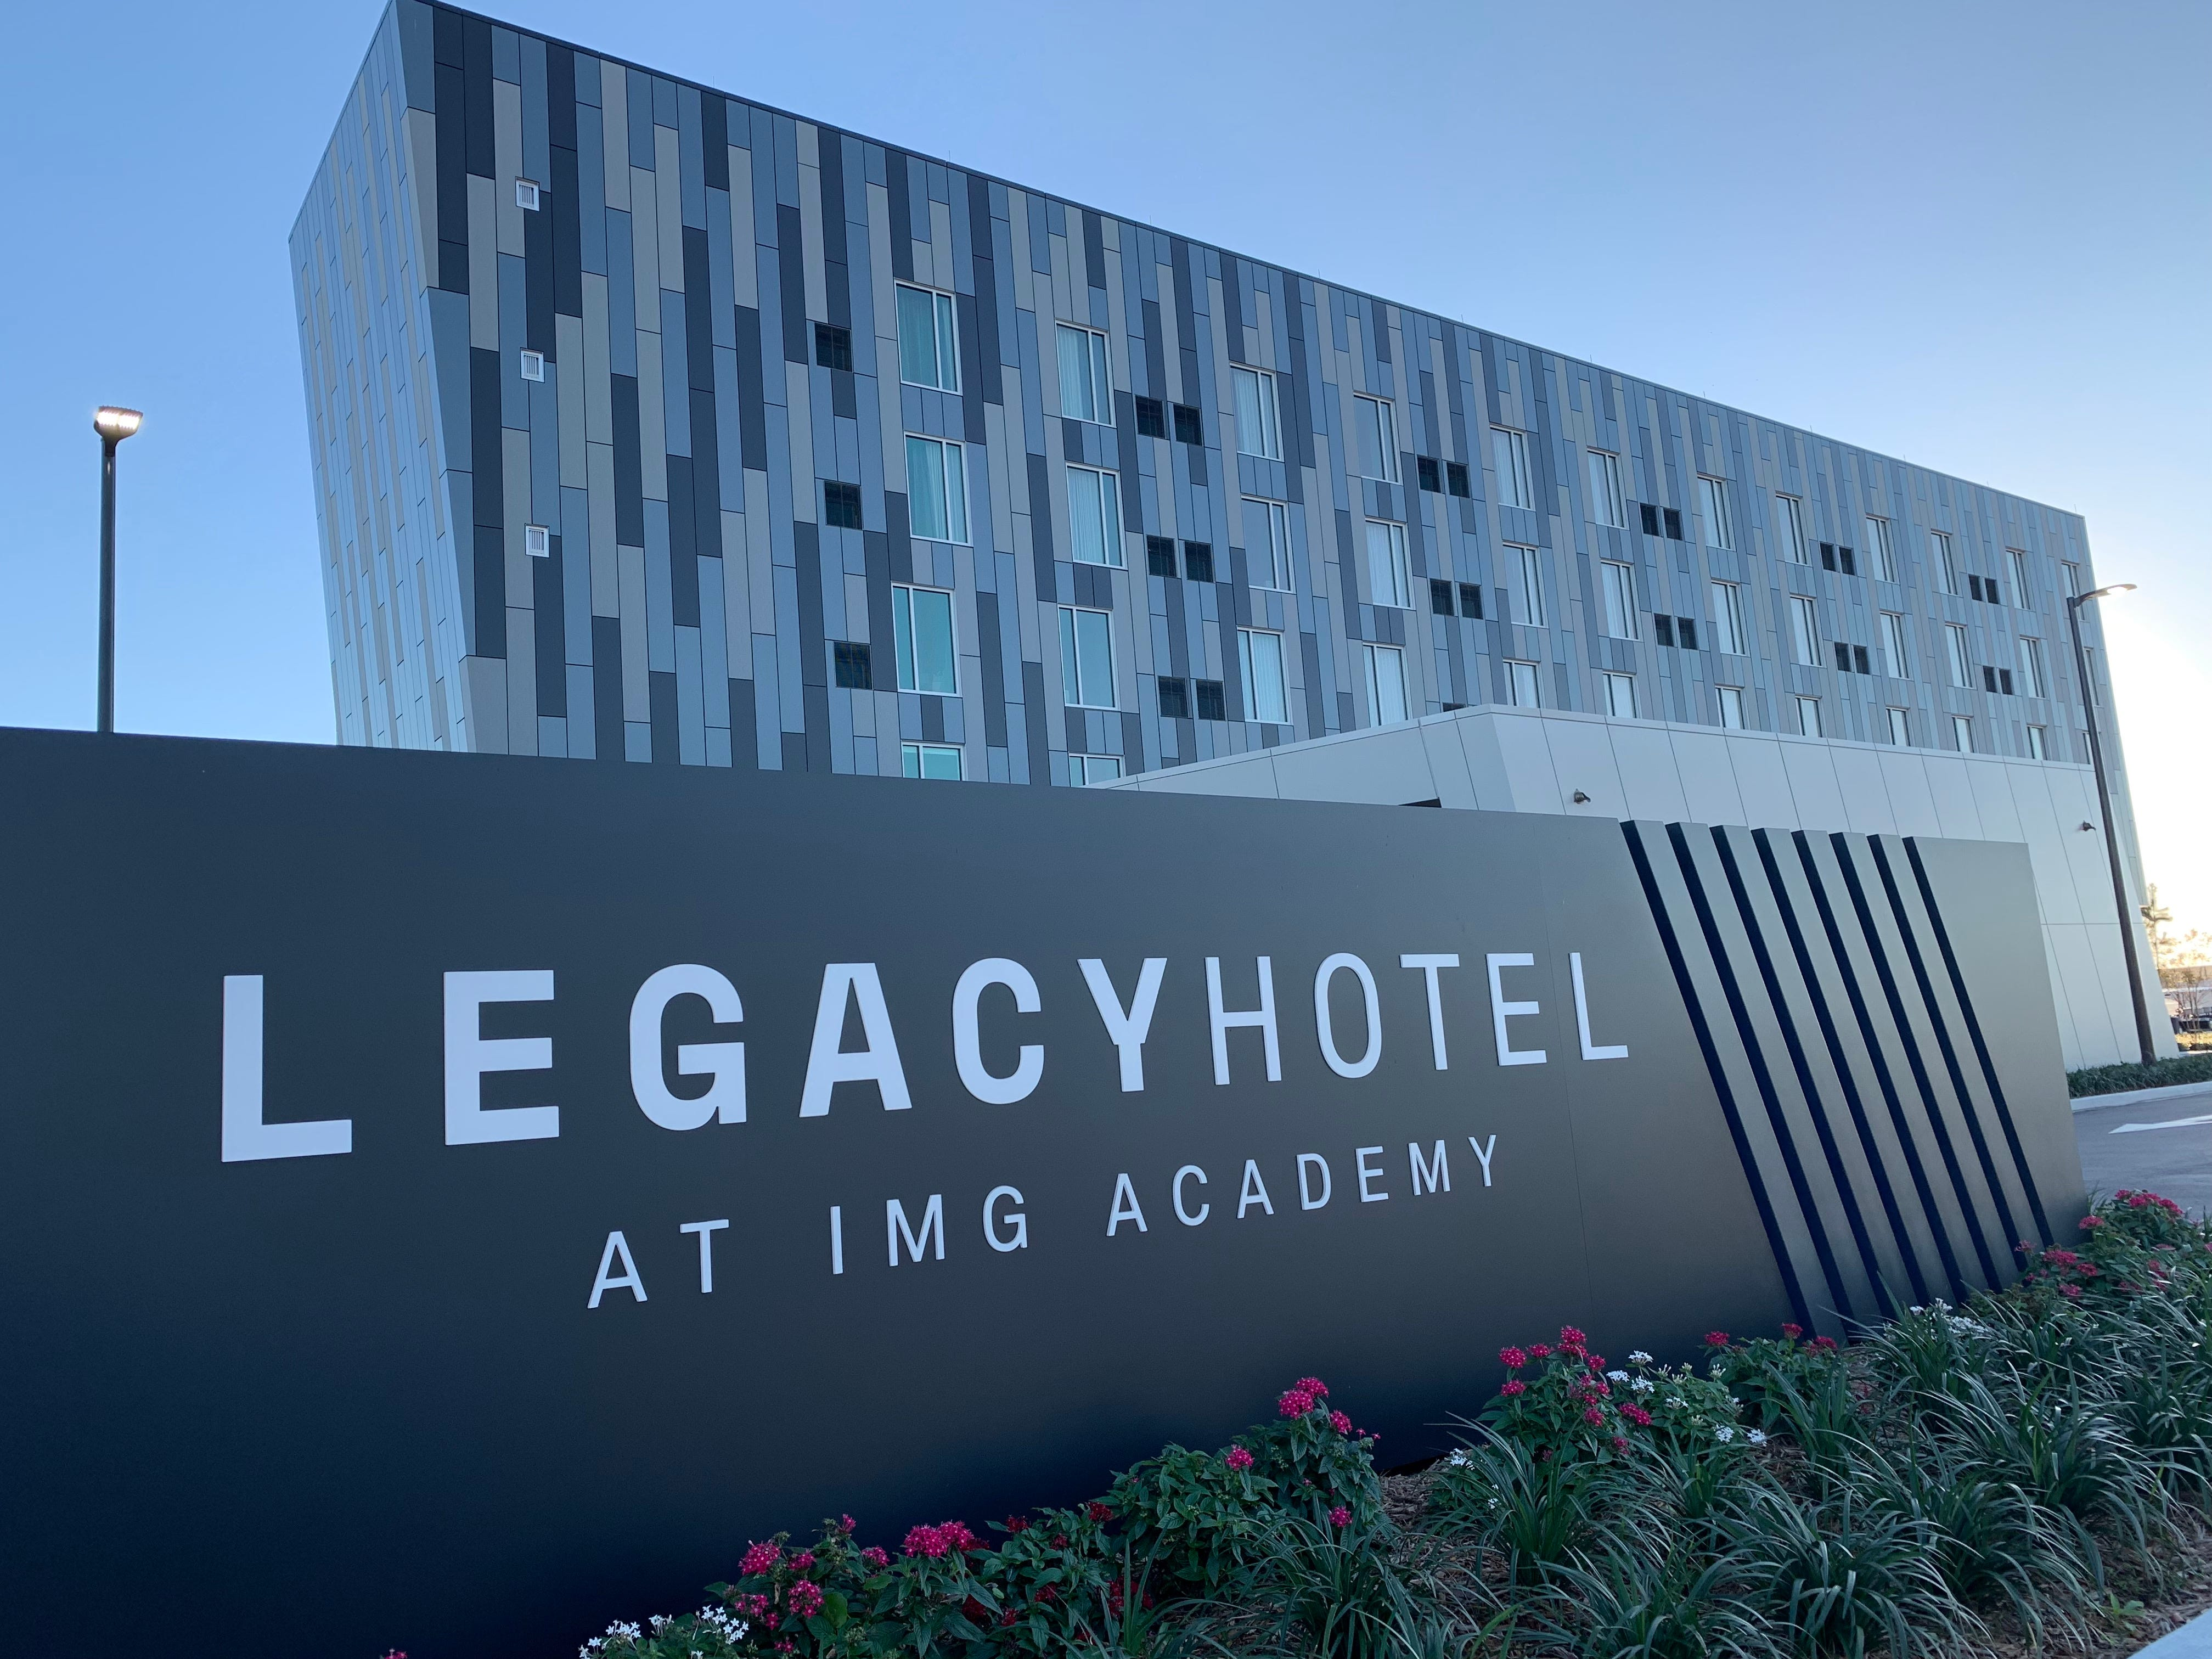 FC Cincinnati's players, coaches, and some members of its staff are lodged at the IMG Academy's Legacy Hotel, which was constructed in 2018 and is a new offering on the property.